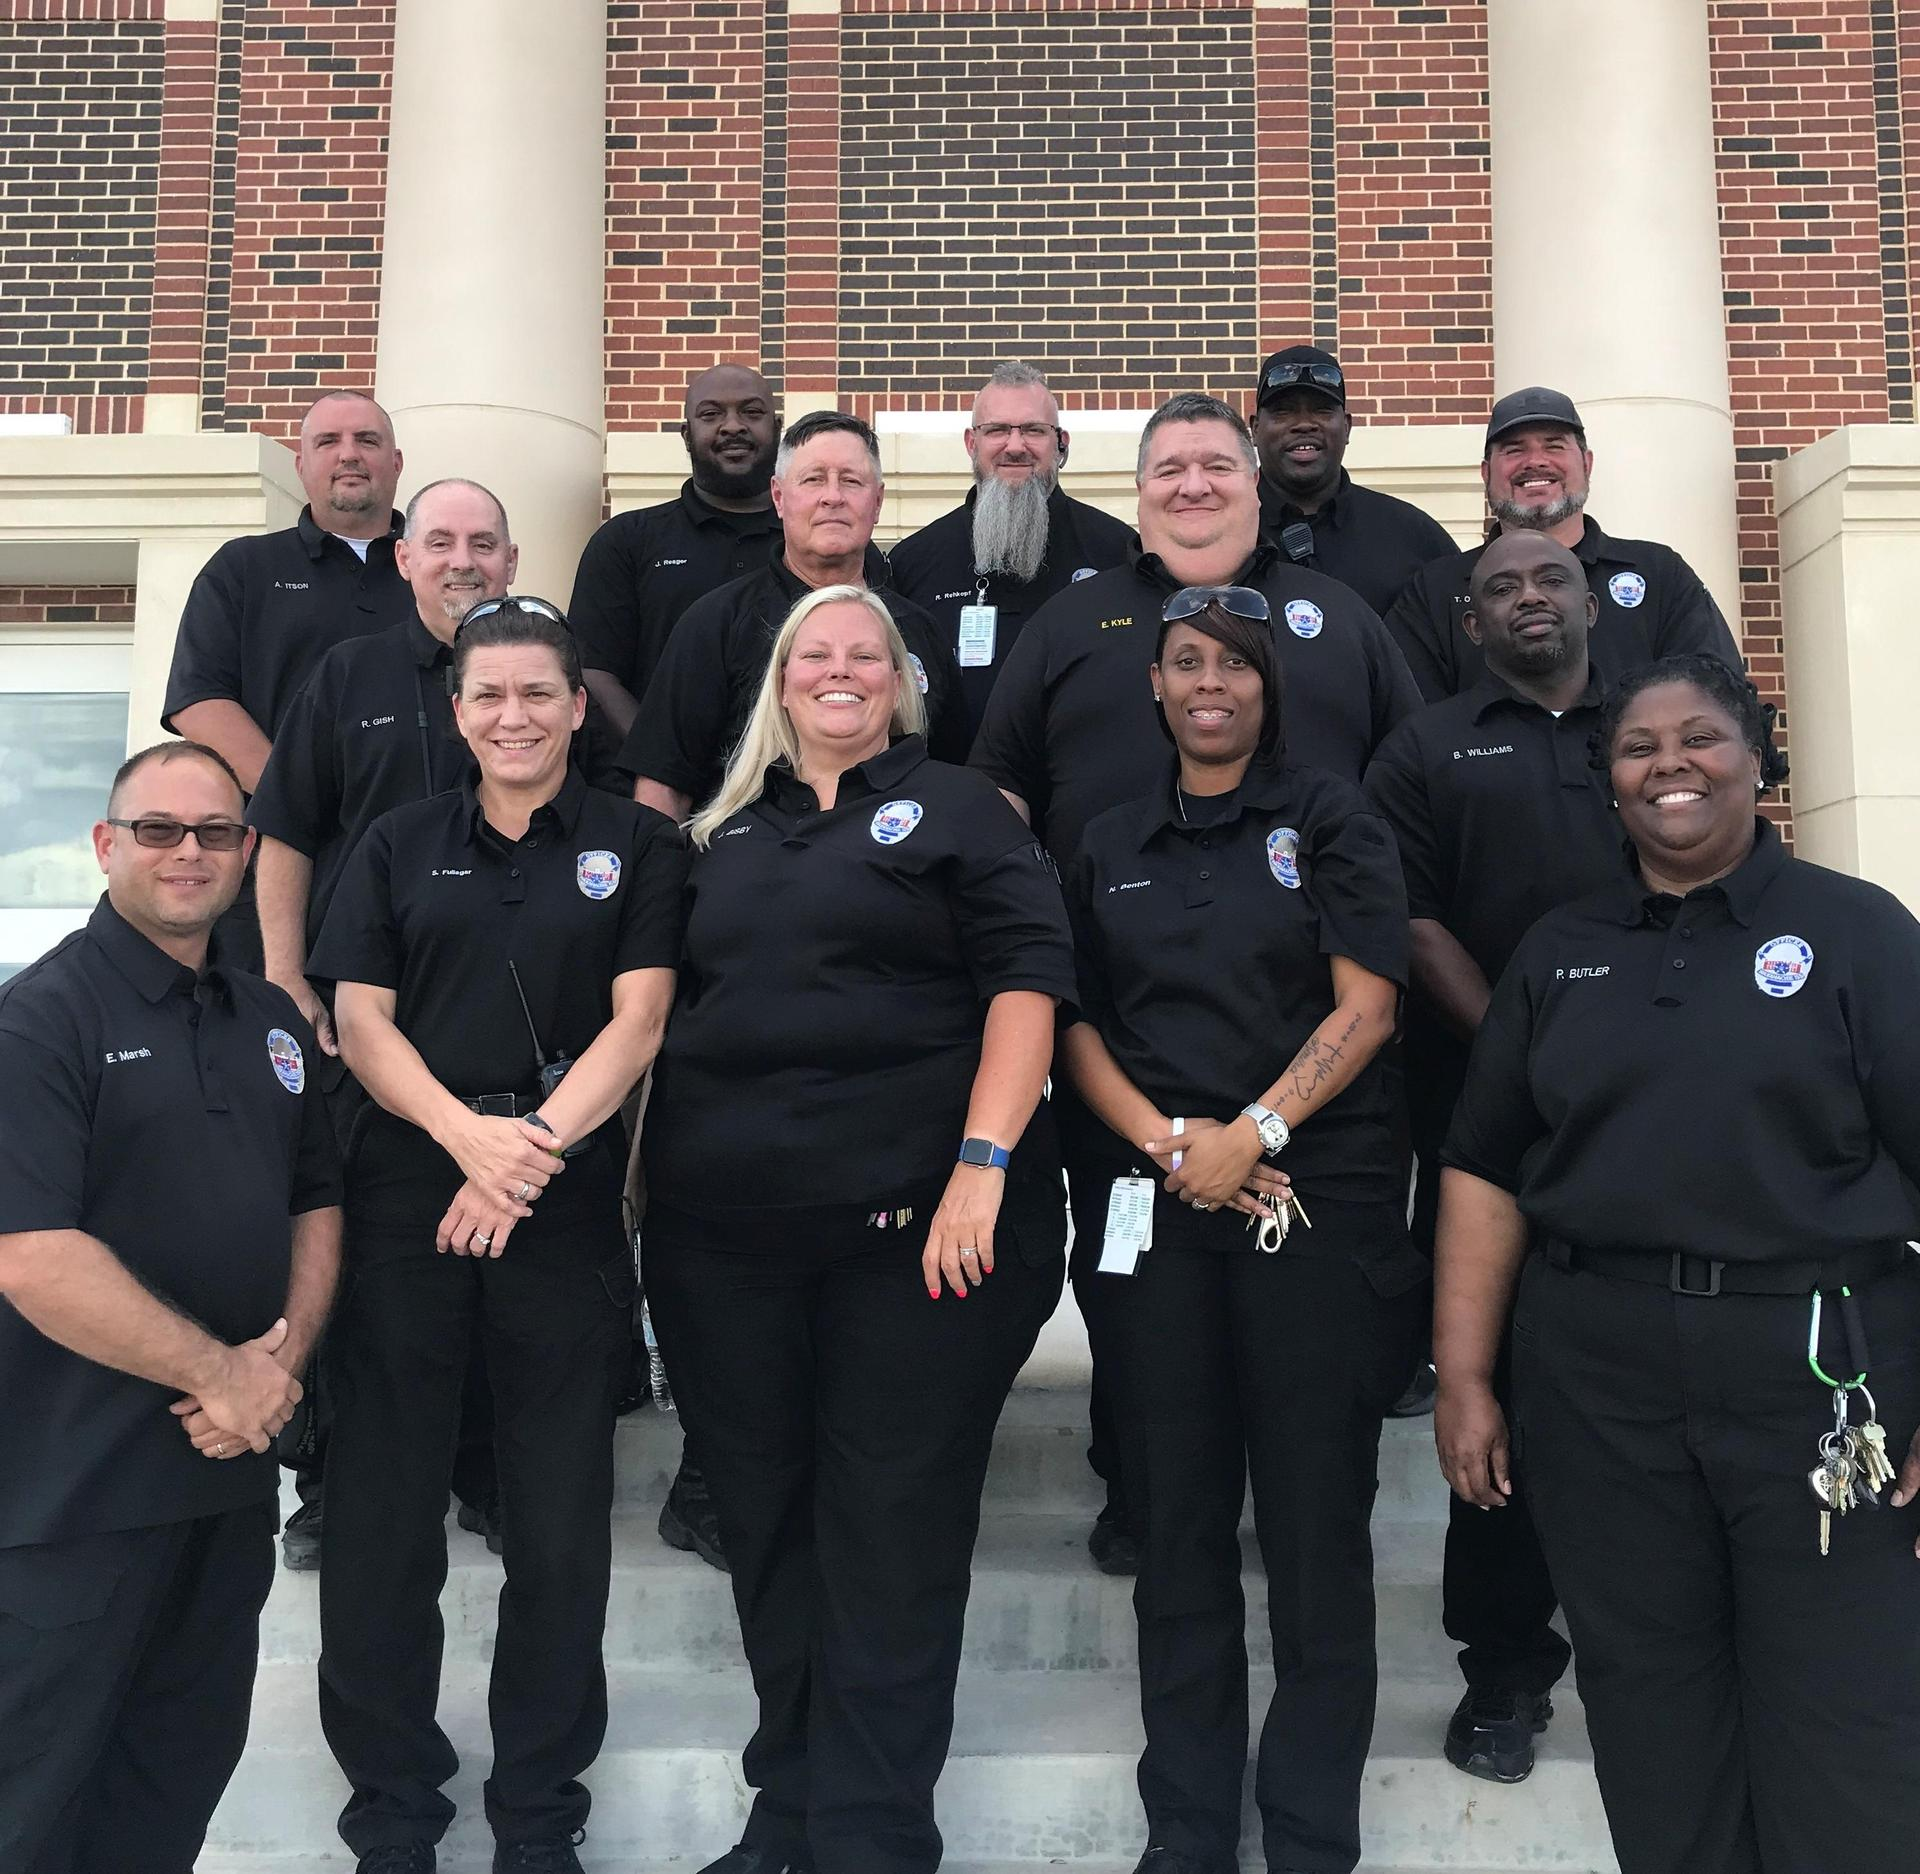 the security team posing outside an entrance to WHS